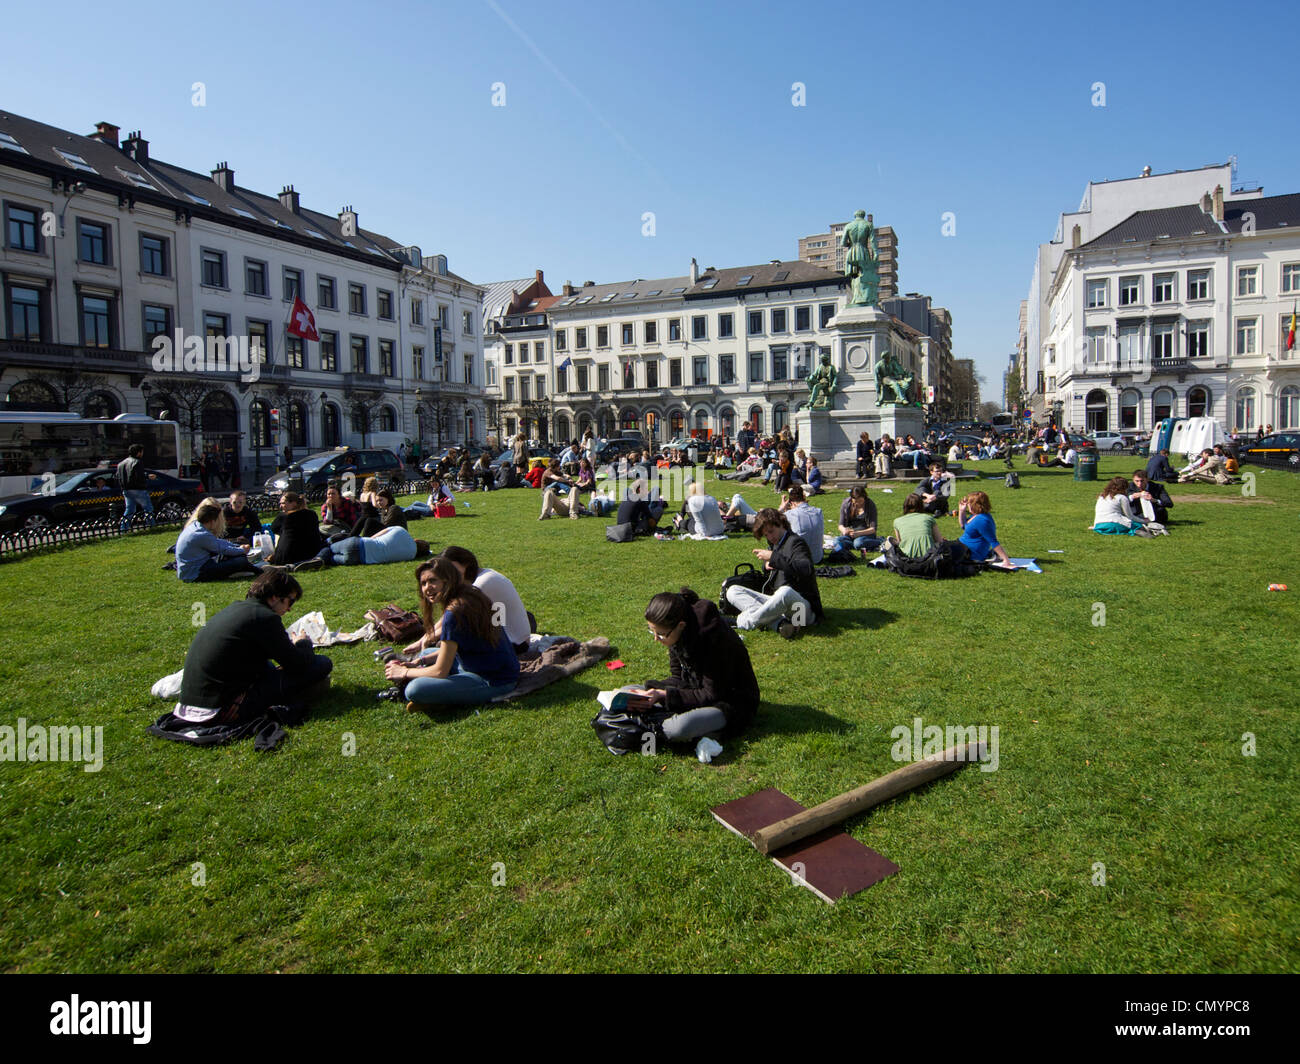 Many people enjoying the sun during their lunch break on the grass of the Place du Luxembourg in Brussels, Belgium Stock Photo